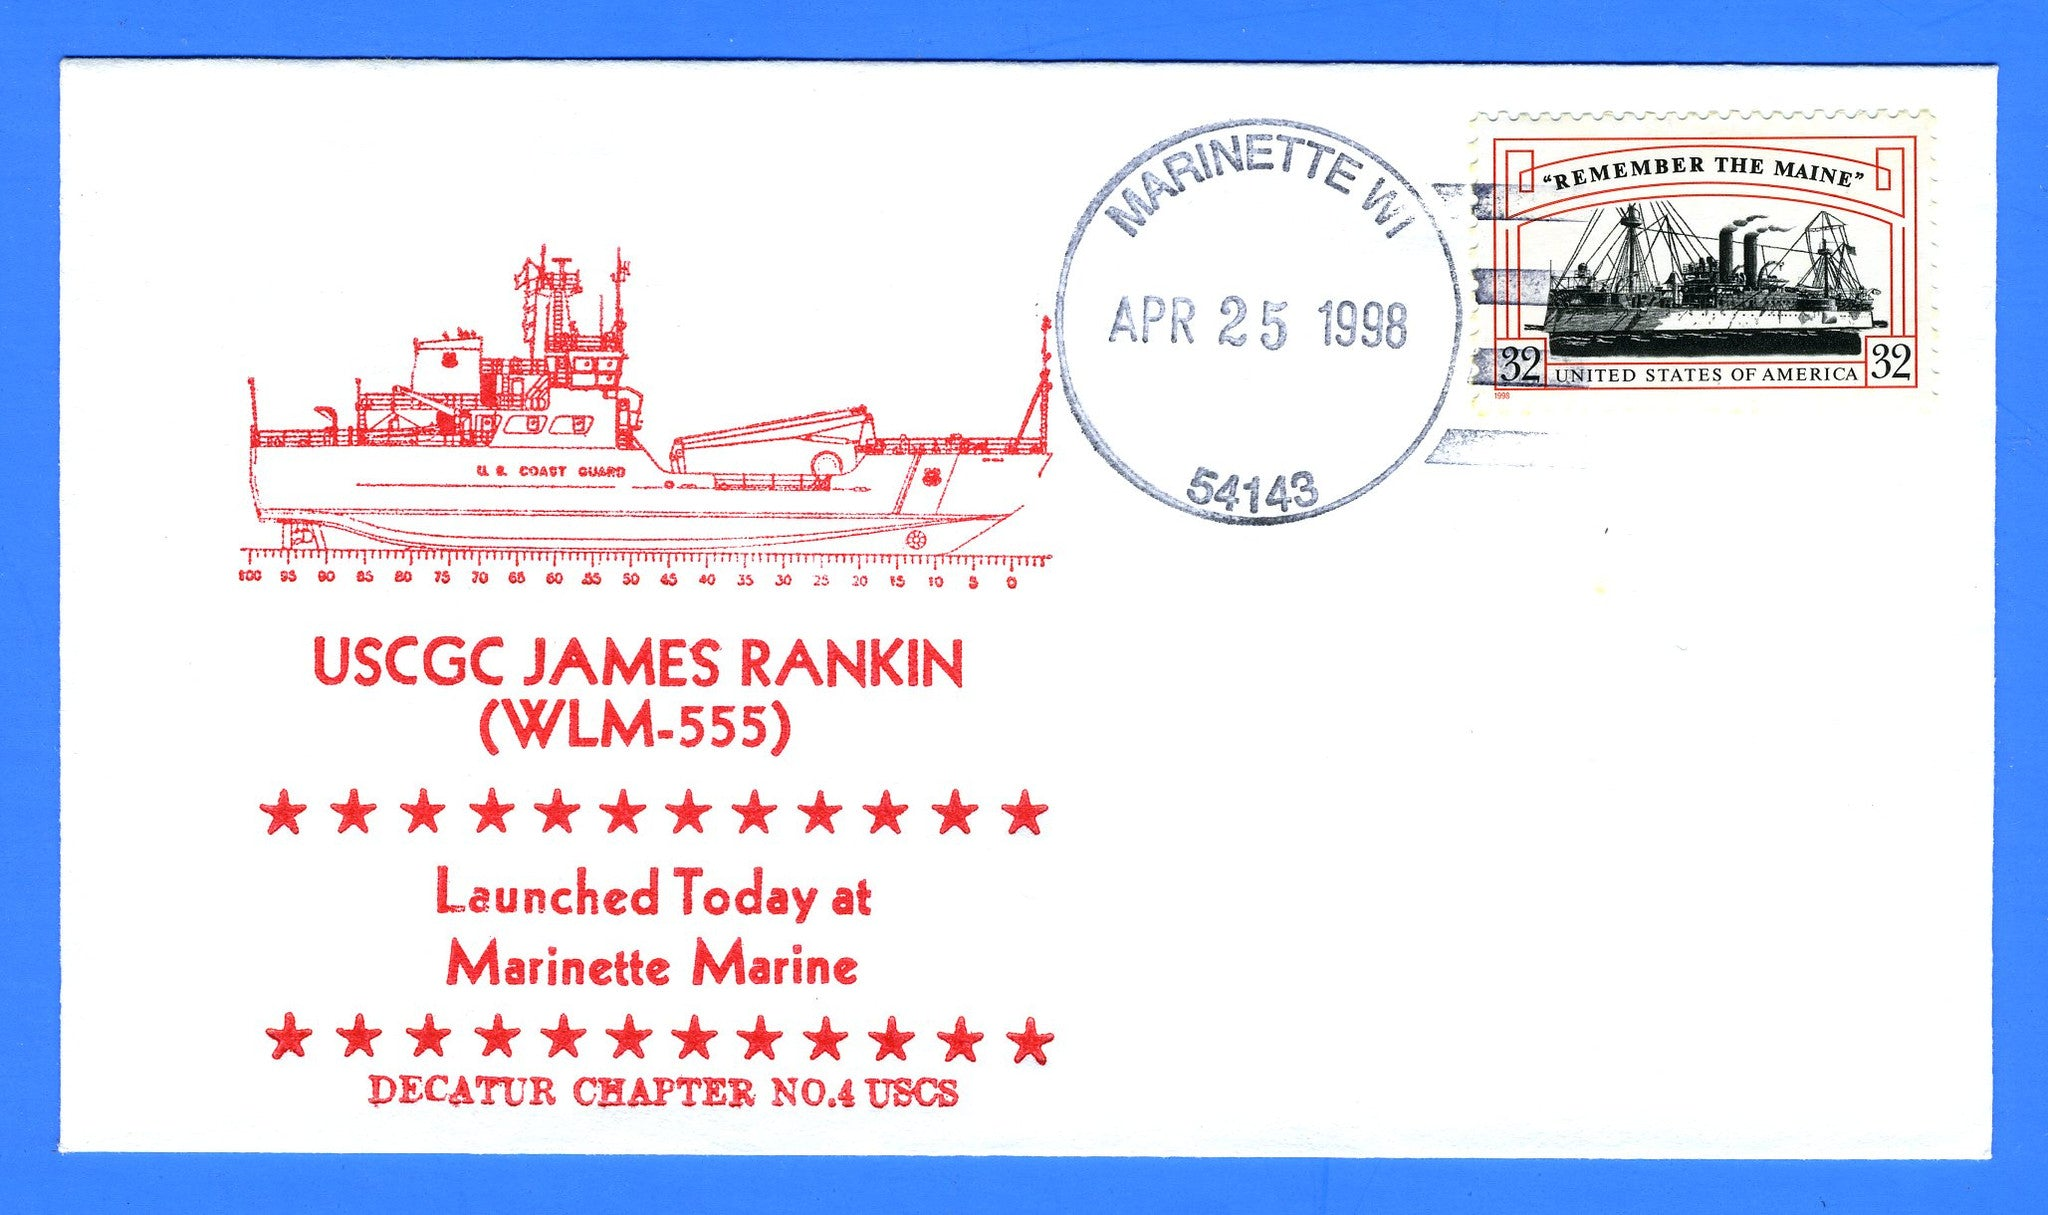 USCGC James Rankin WLM-555 Launched April 25, 1998 - Cachet by USS Decatur Chapter No. 4, USCS